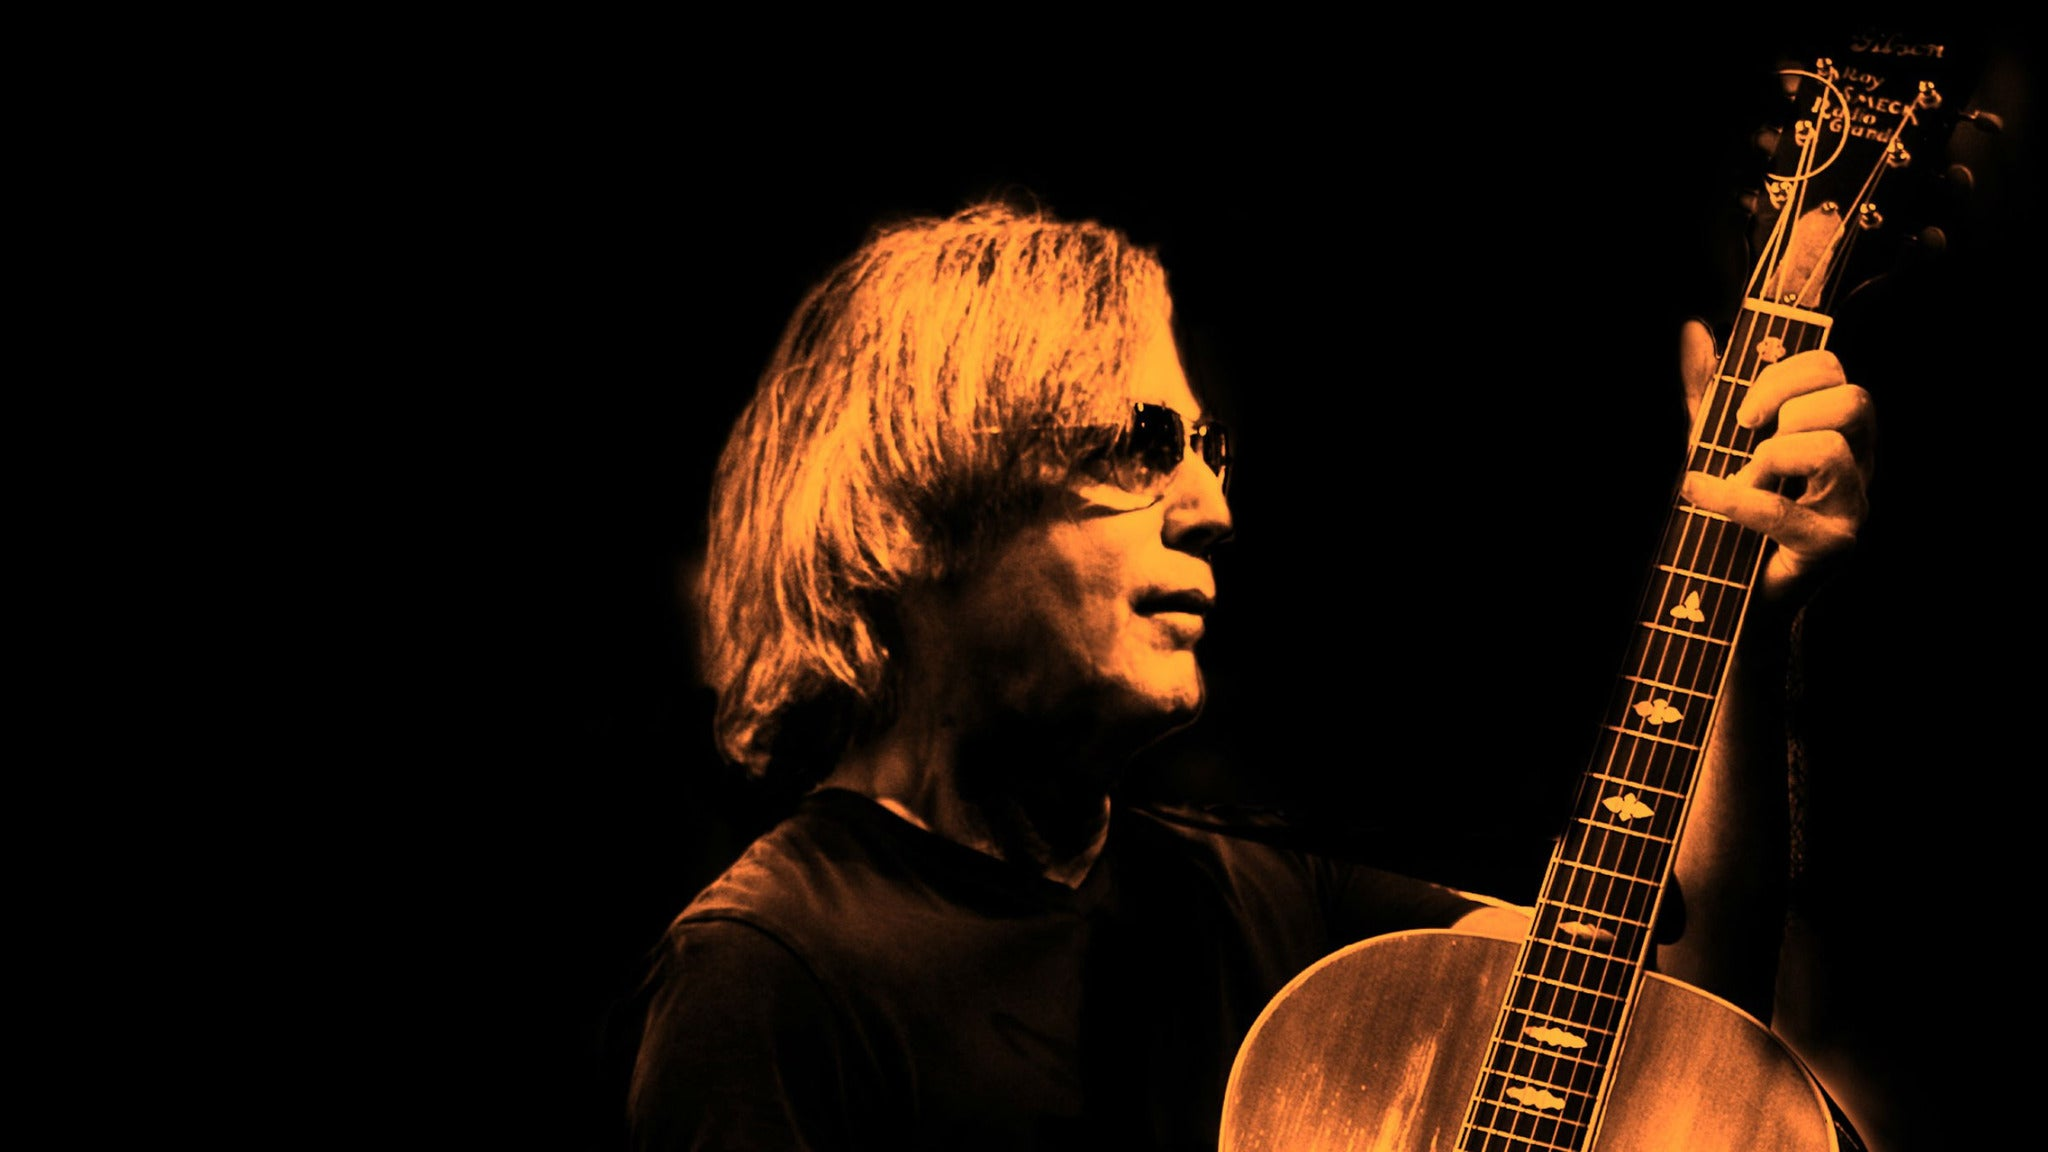 Jackson Browne at Waikiki Shell